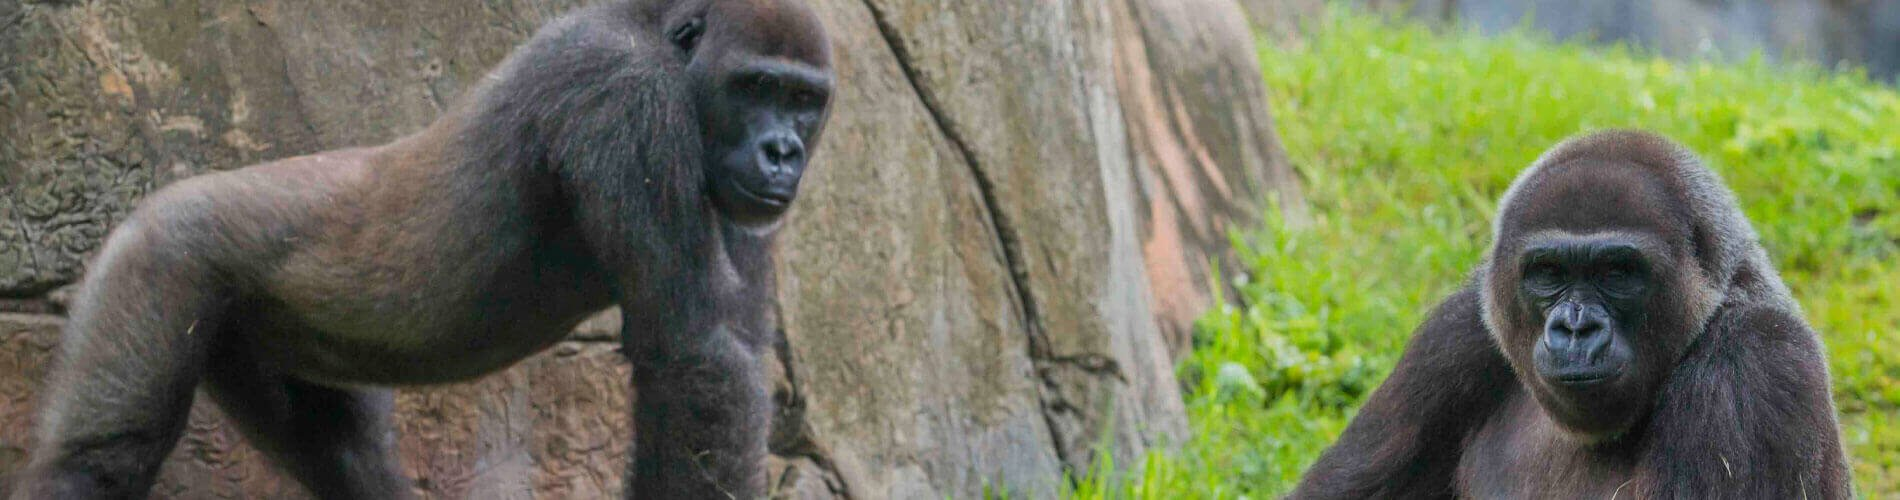 Gorillas and Other Primates at Busch Gardens Tampa Bay